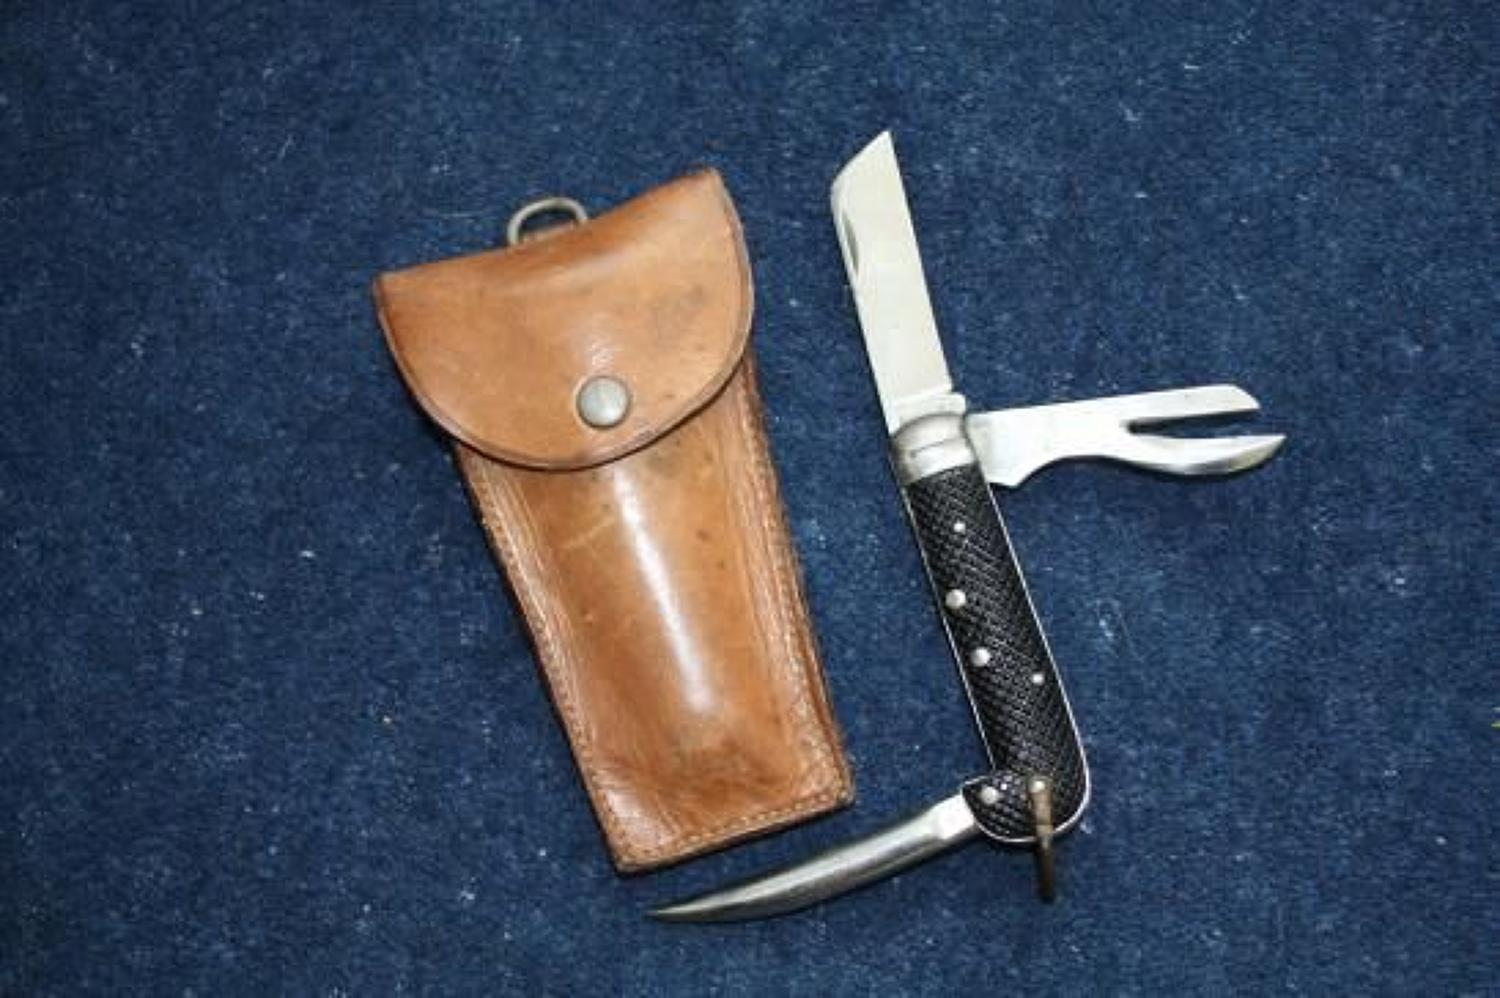 WW2 British Armed Forces Jack knife. Dated 1940 & leather case.